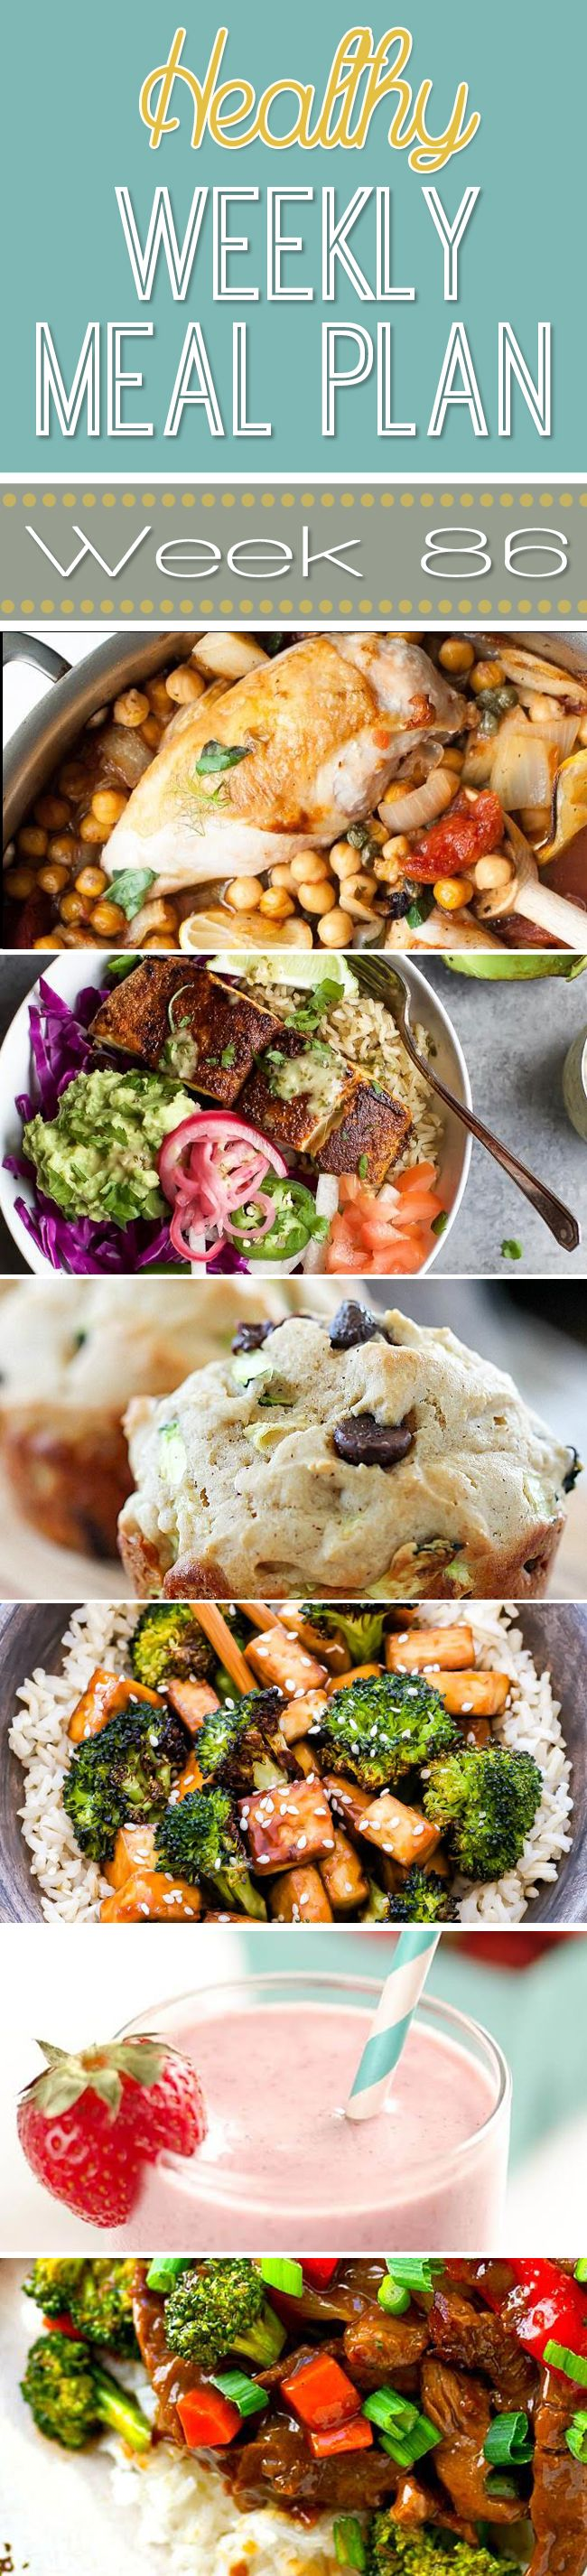 Plan out next week's meals with this Healthy Weekly Meal Plan Week #86! This week's menu plan is full of delicious weeknight meals, while also including a healthy breakfast, lunch, side dish and dessert, too!